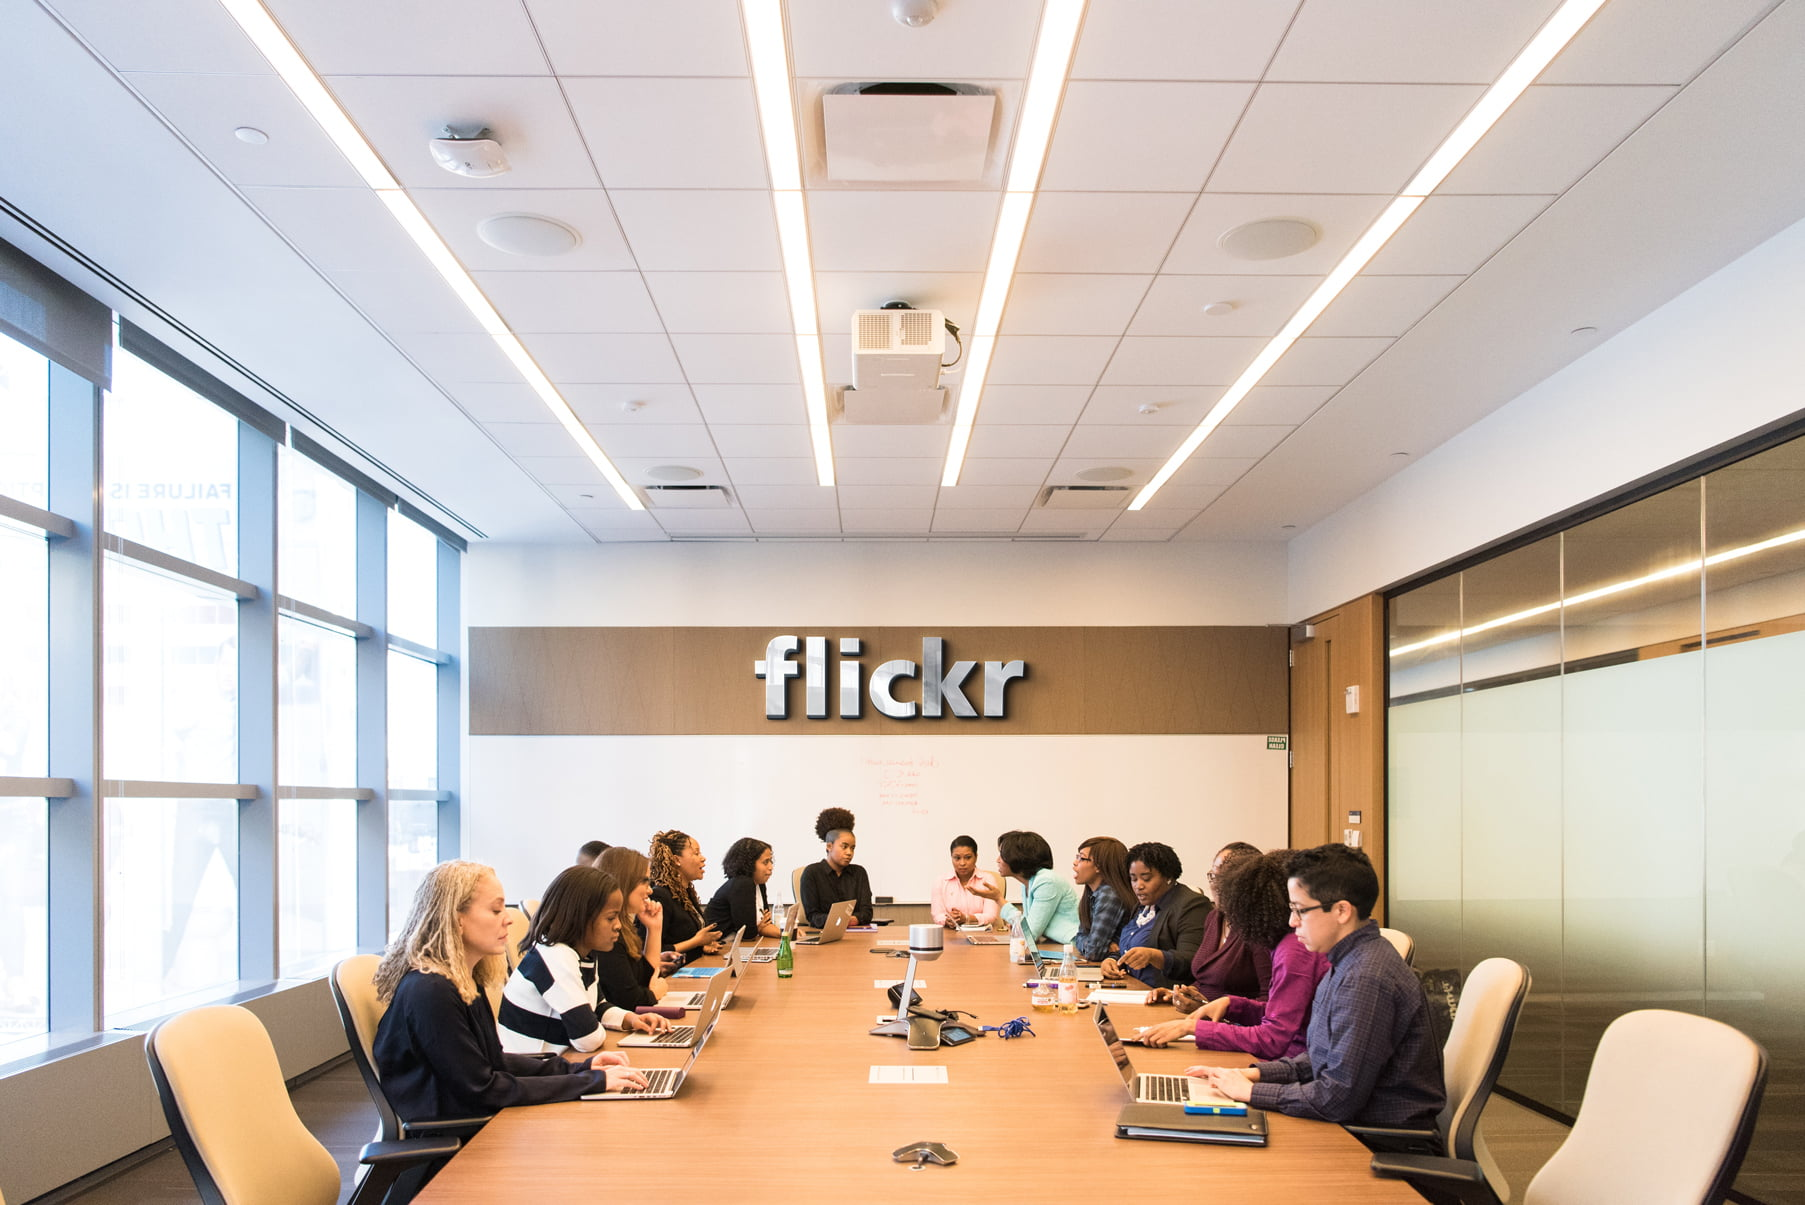 Flickr Board Meeting Room Logo Mockup by GraphicsFamily